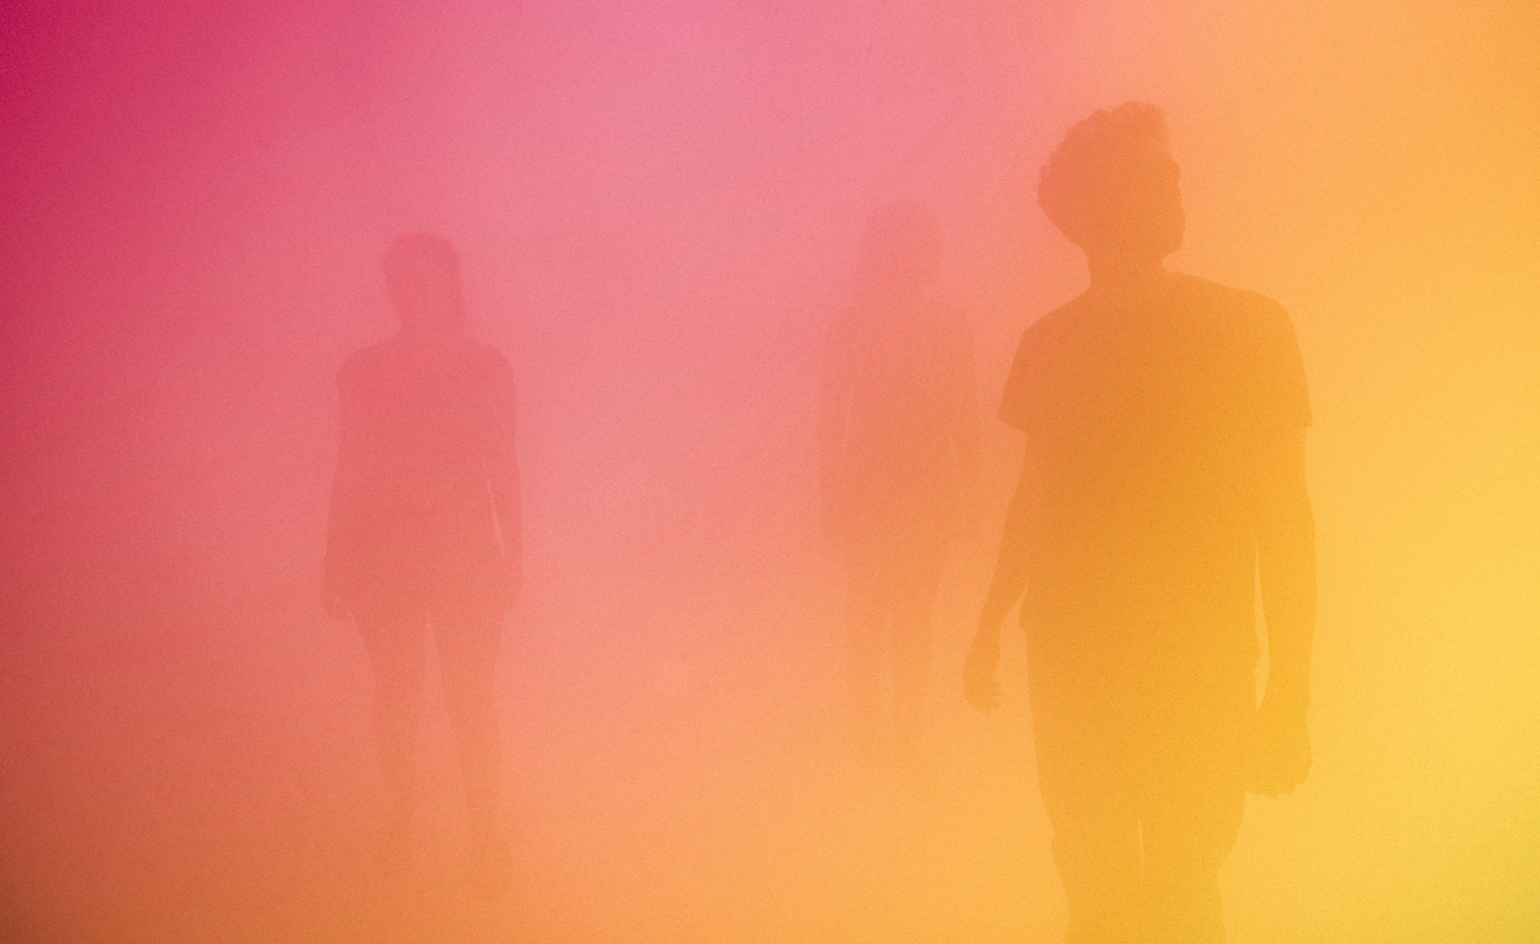 YellowBluePink installations by Ann Veronica Janssens